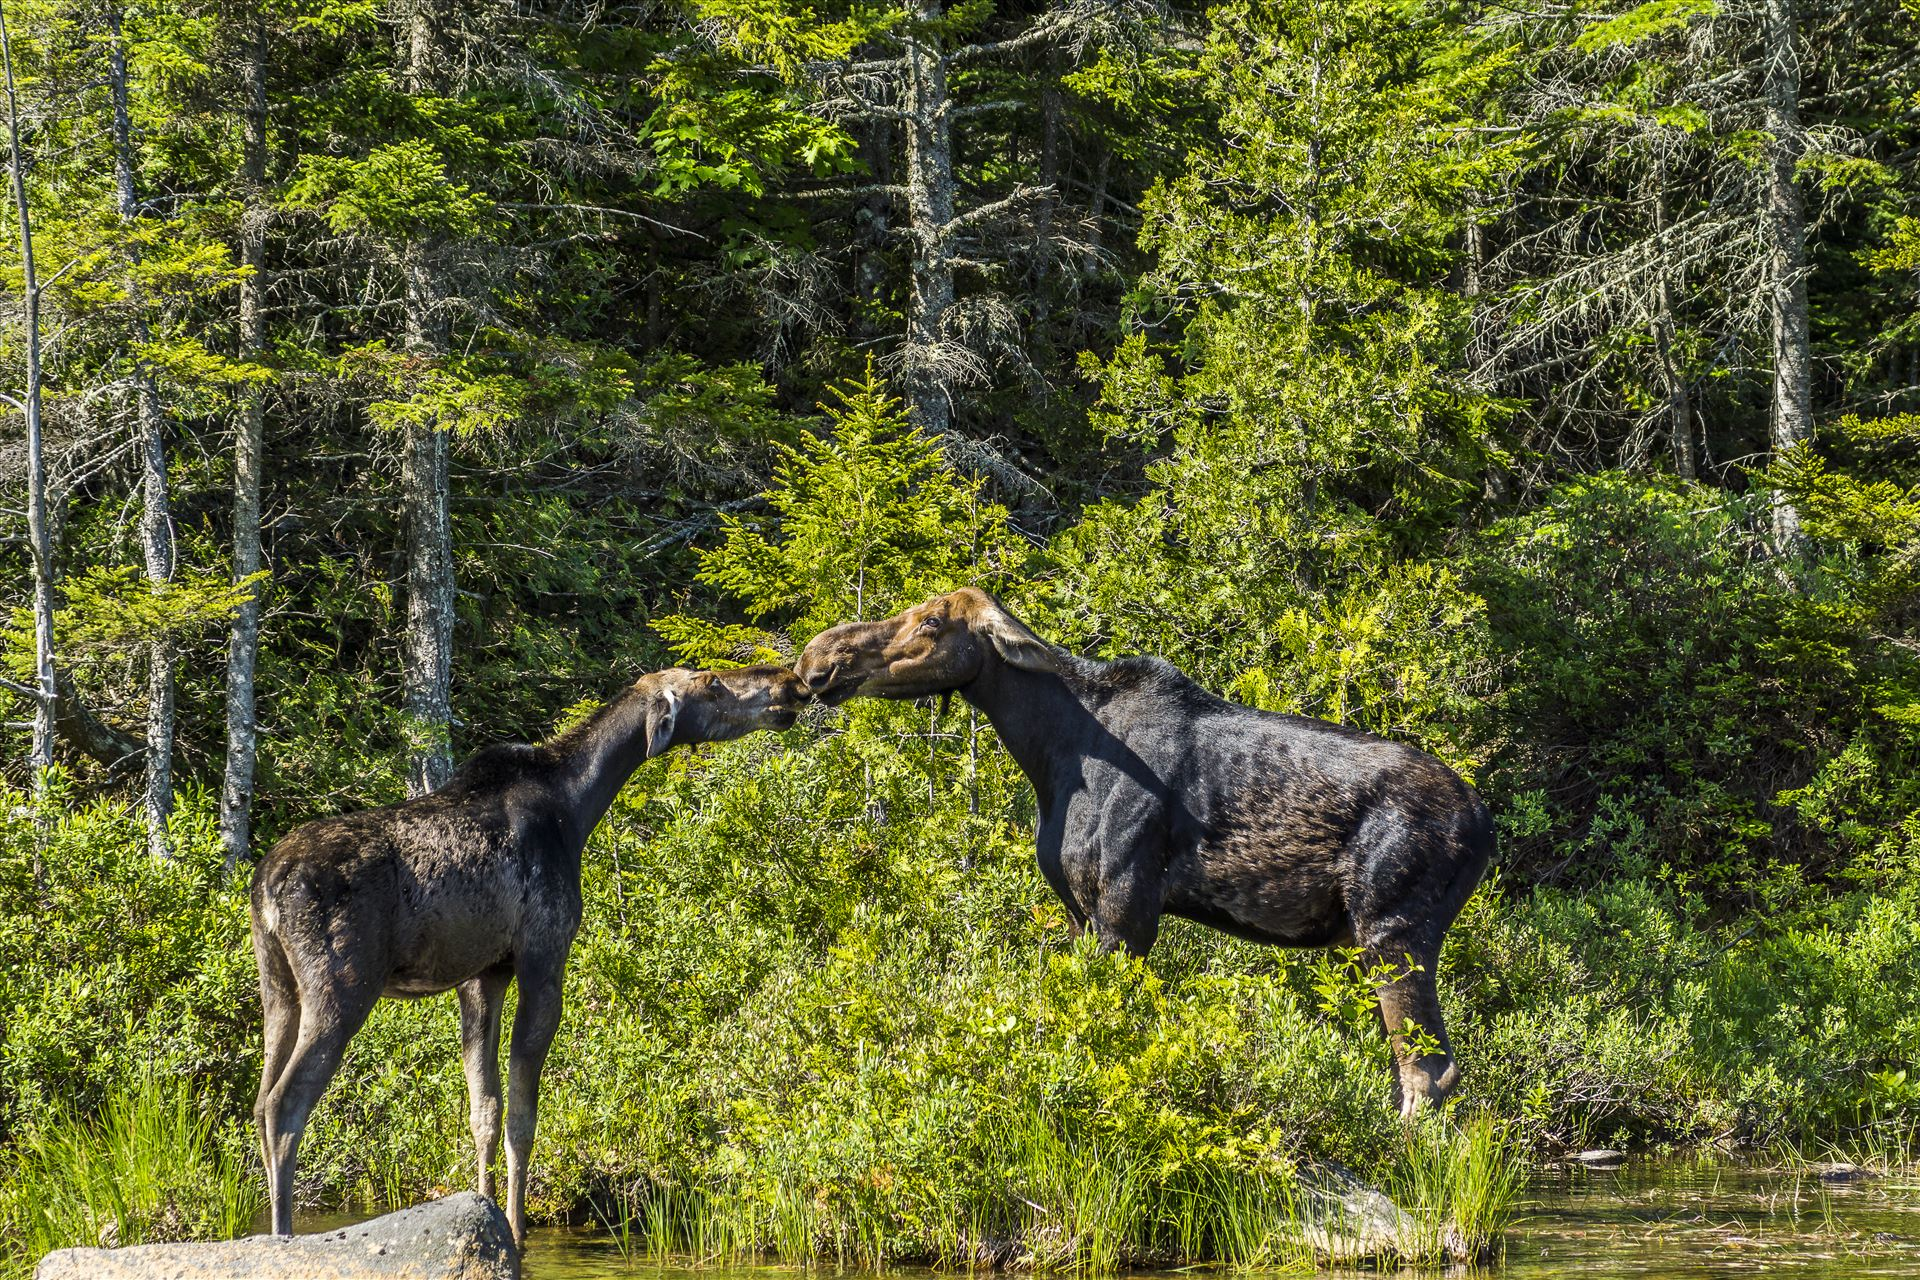 The Moose Kiss - By the looks of their ears I don't think this is a memorable kiss by Buckmaster